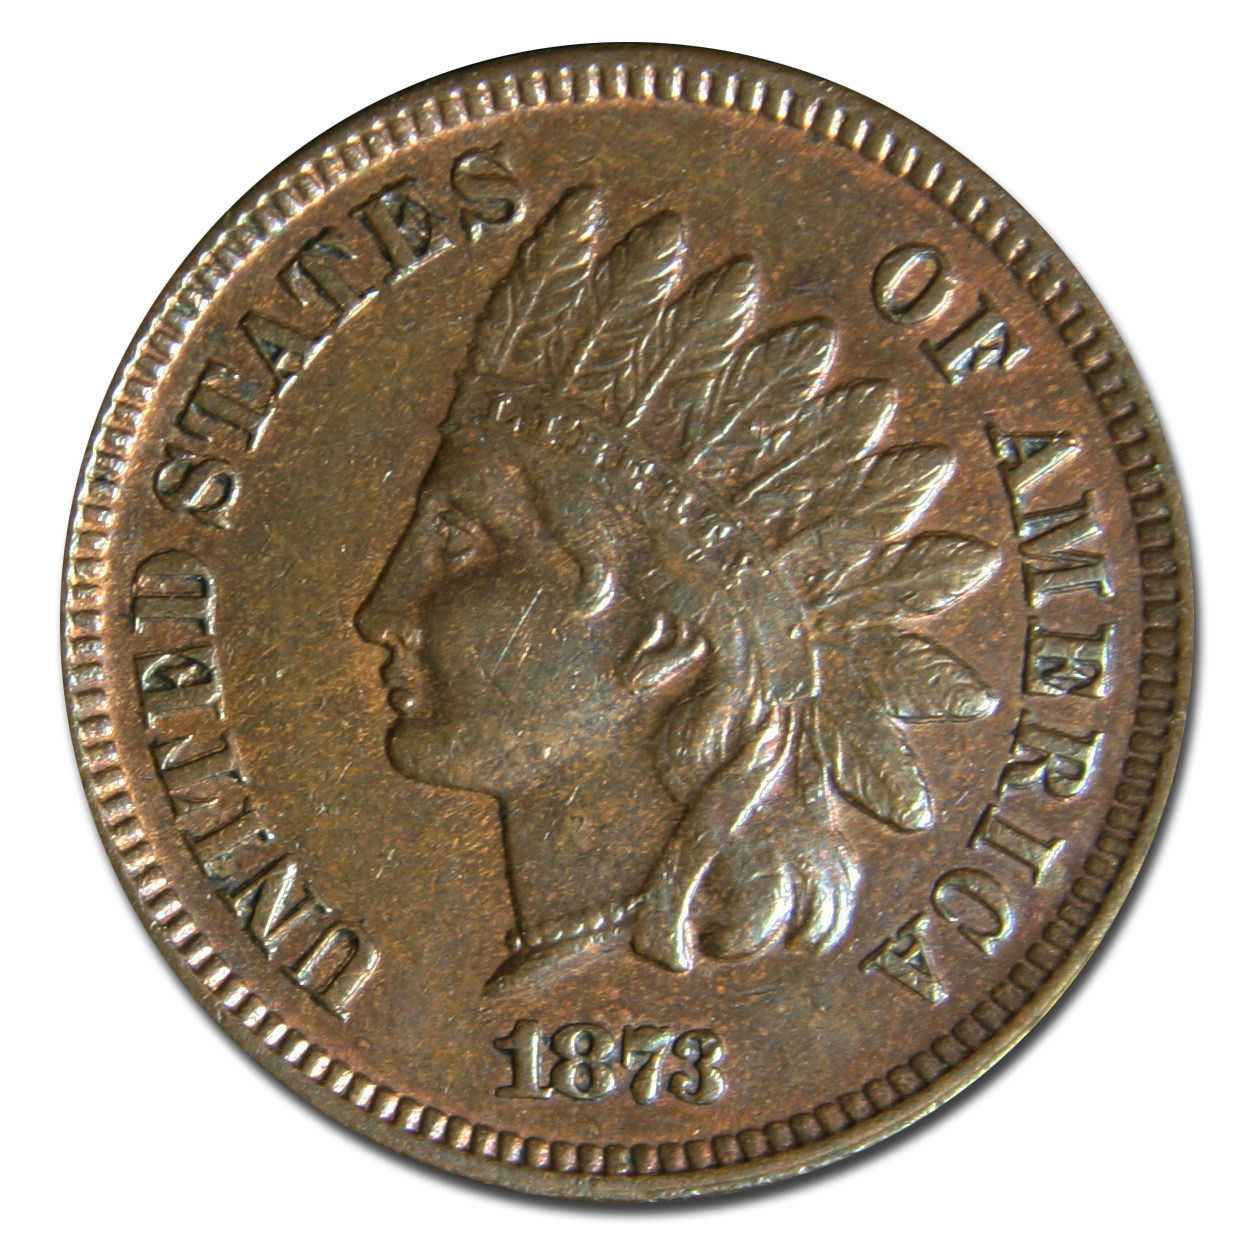 1873 Open 3 Indian Head Penny / Cent Coin Lot# MZ 2966